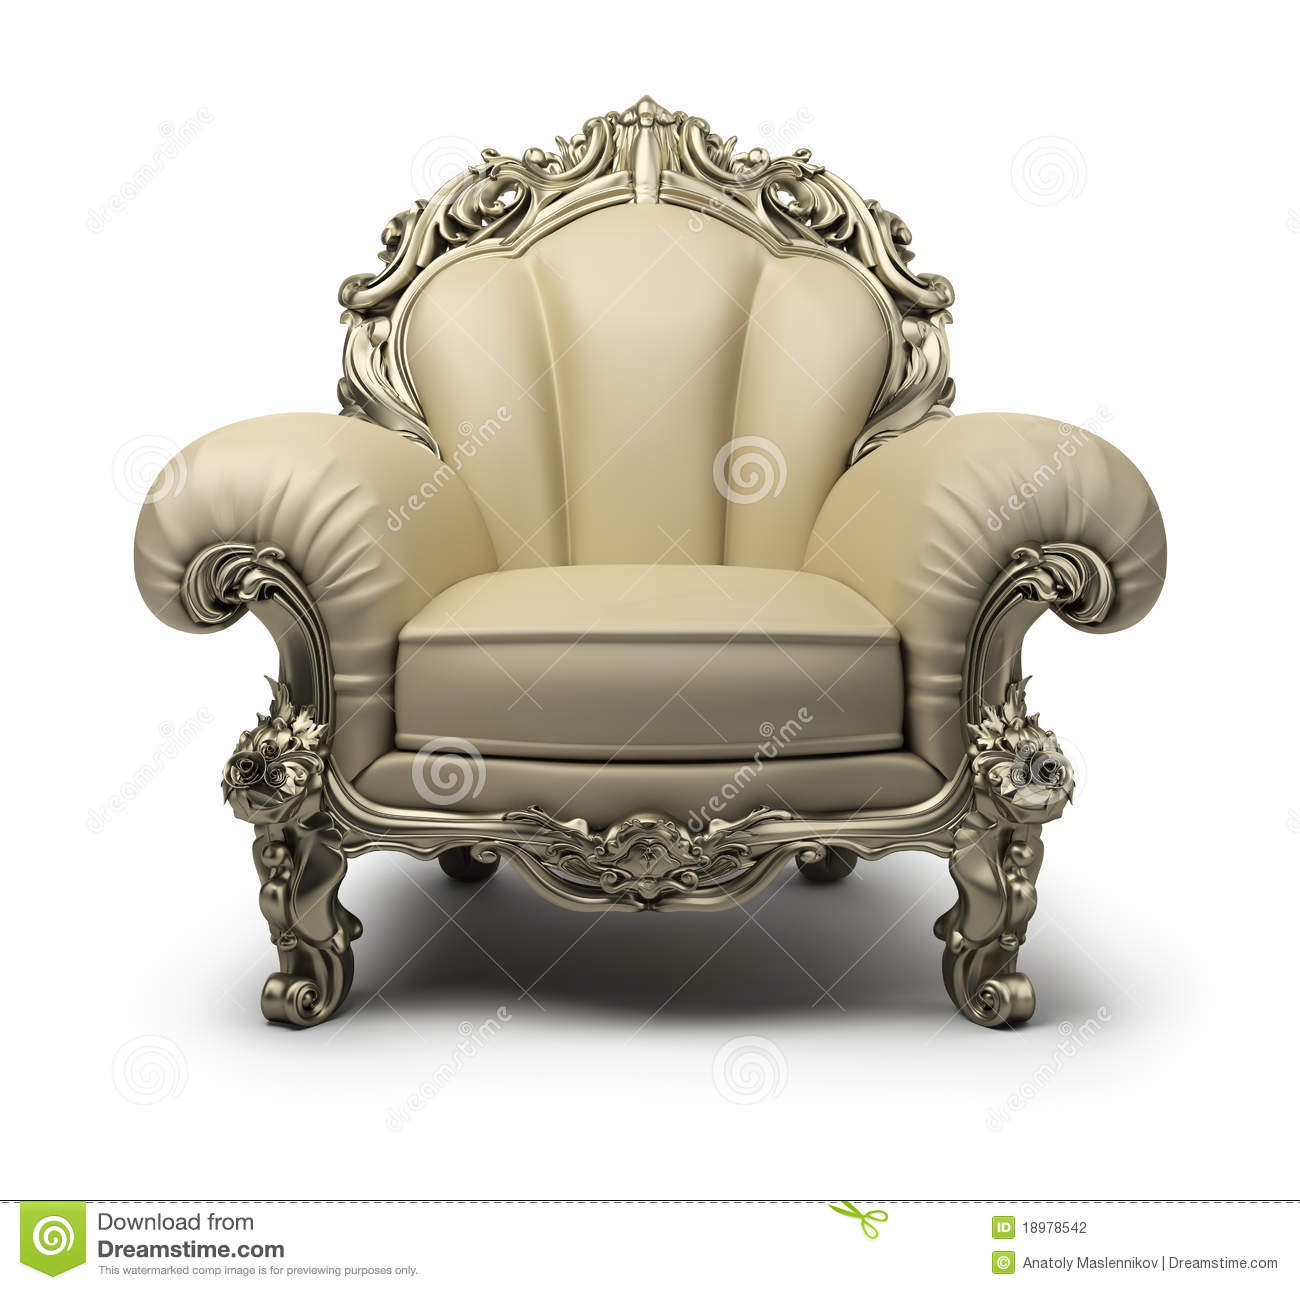 Luxurious armchair stock illustration. Image of place